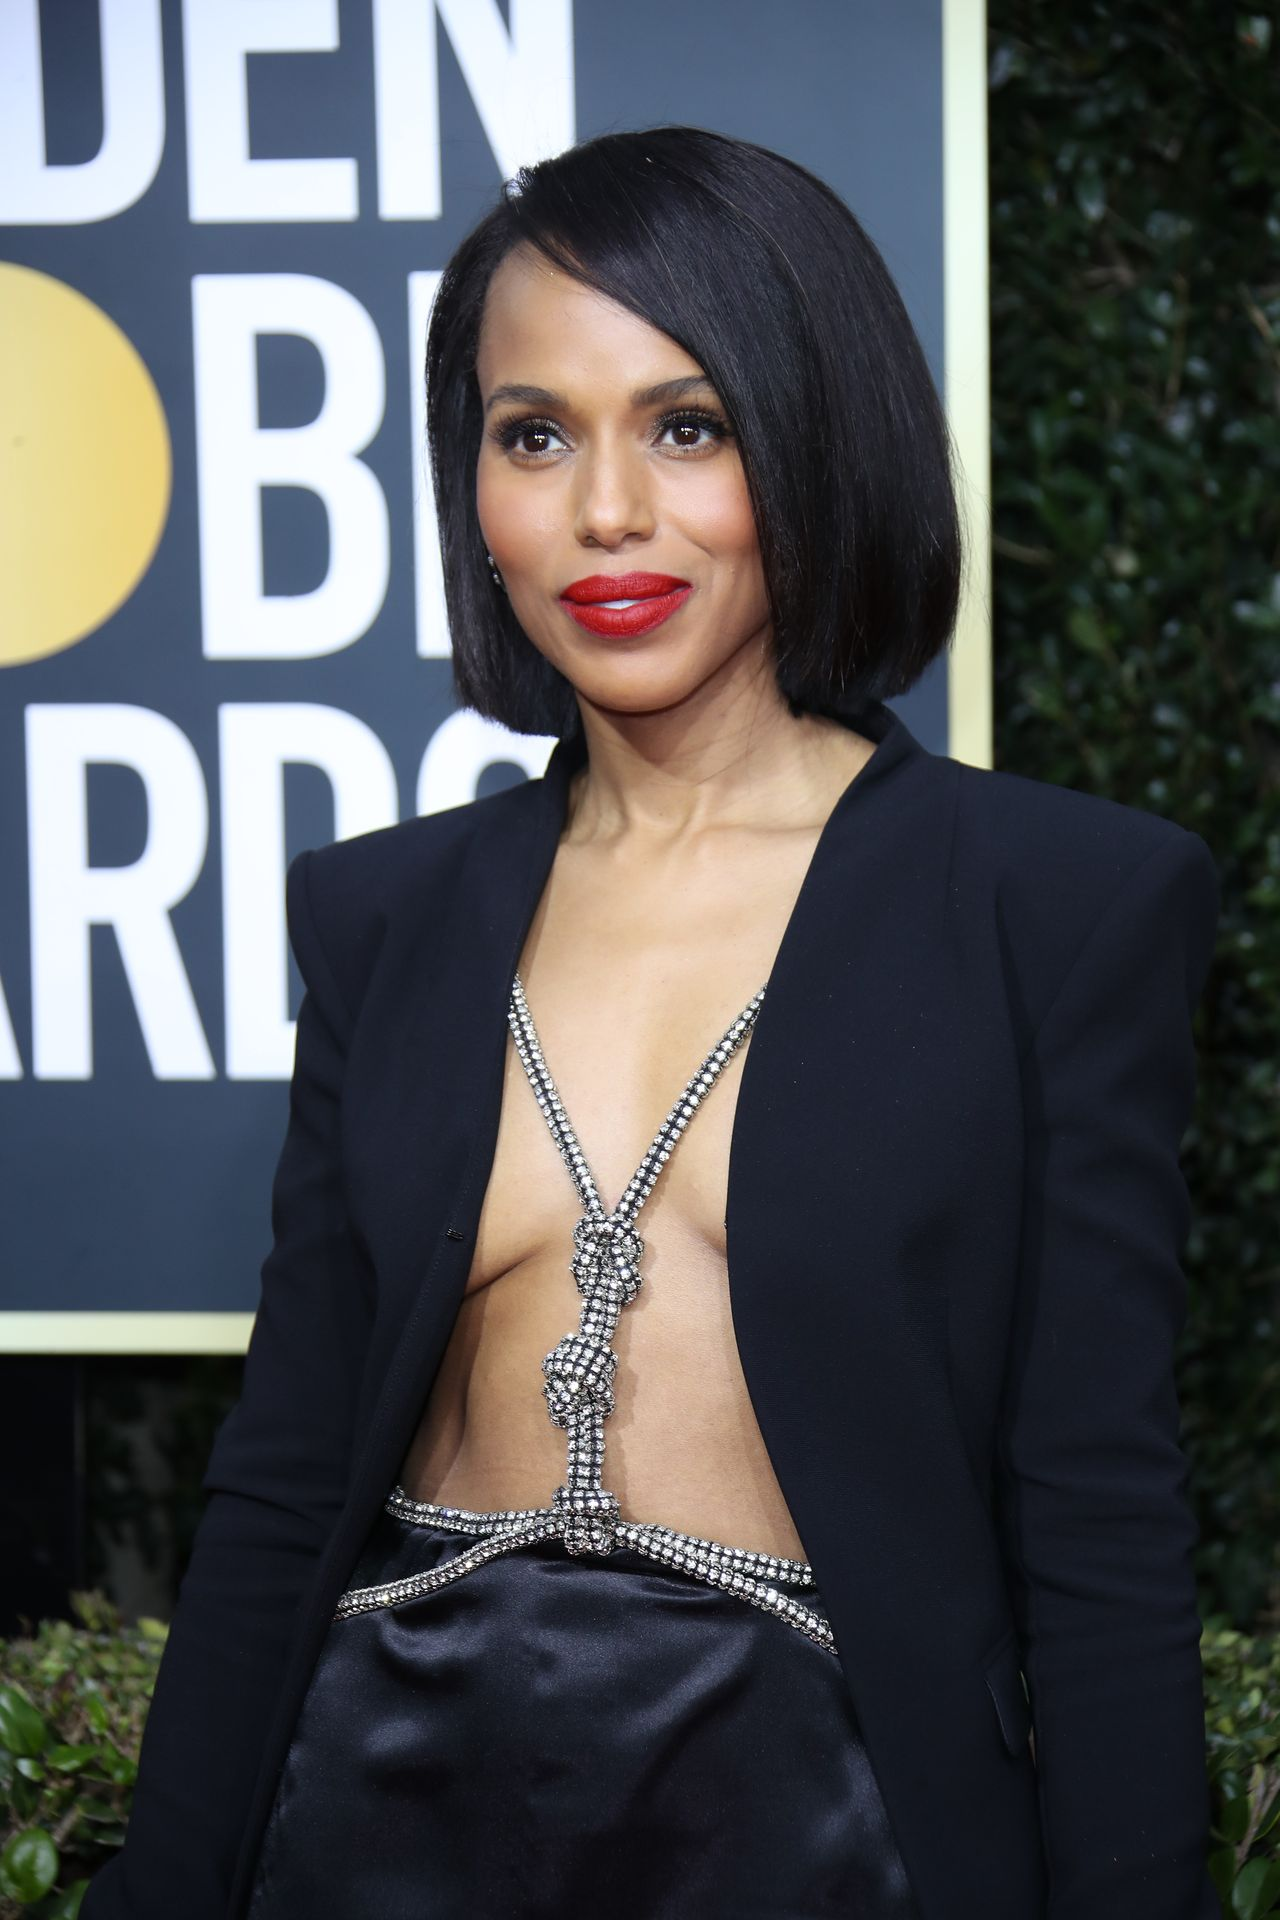 Kerry Washington Braless at Golden Globe Red Carpet 2020